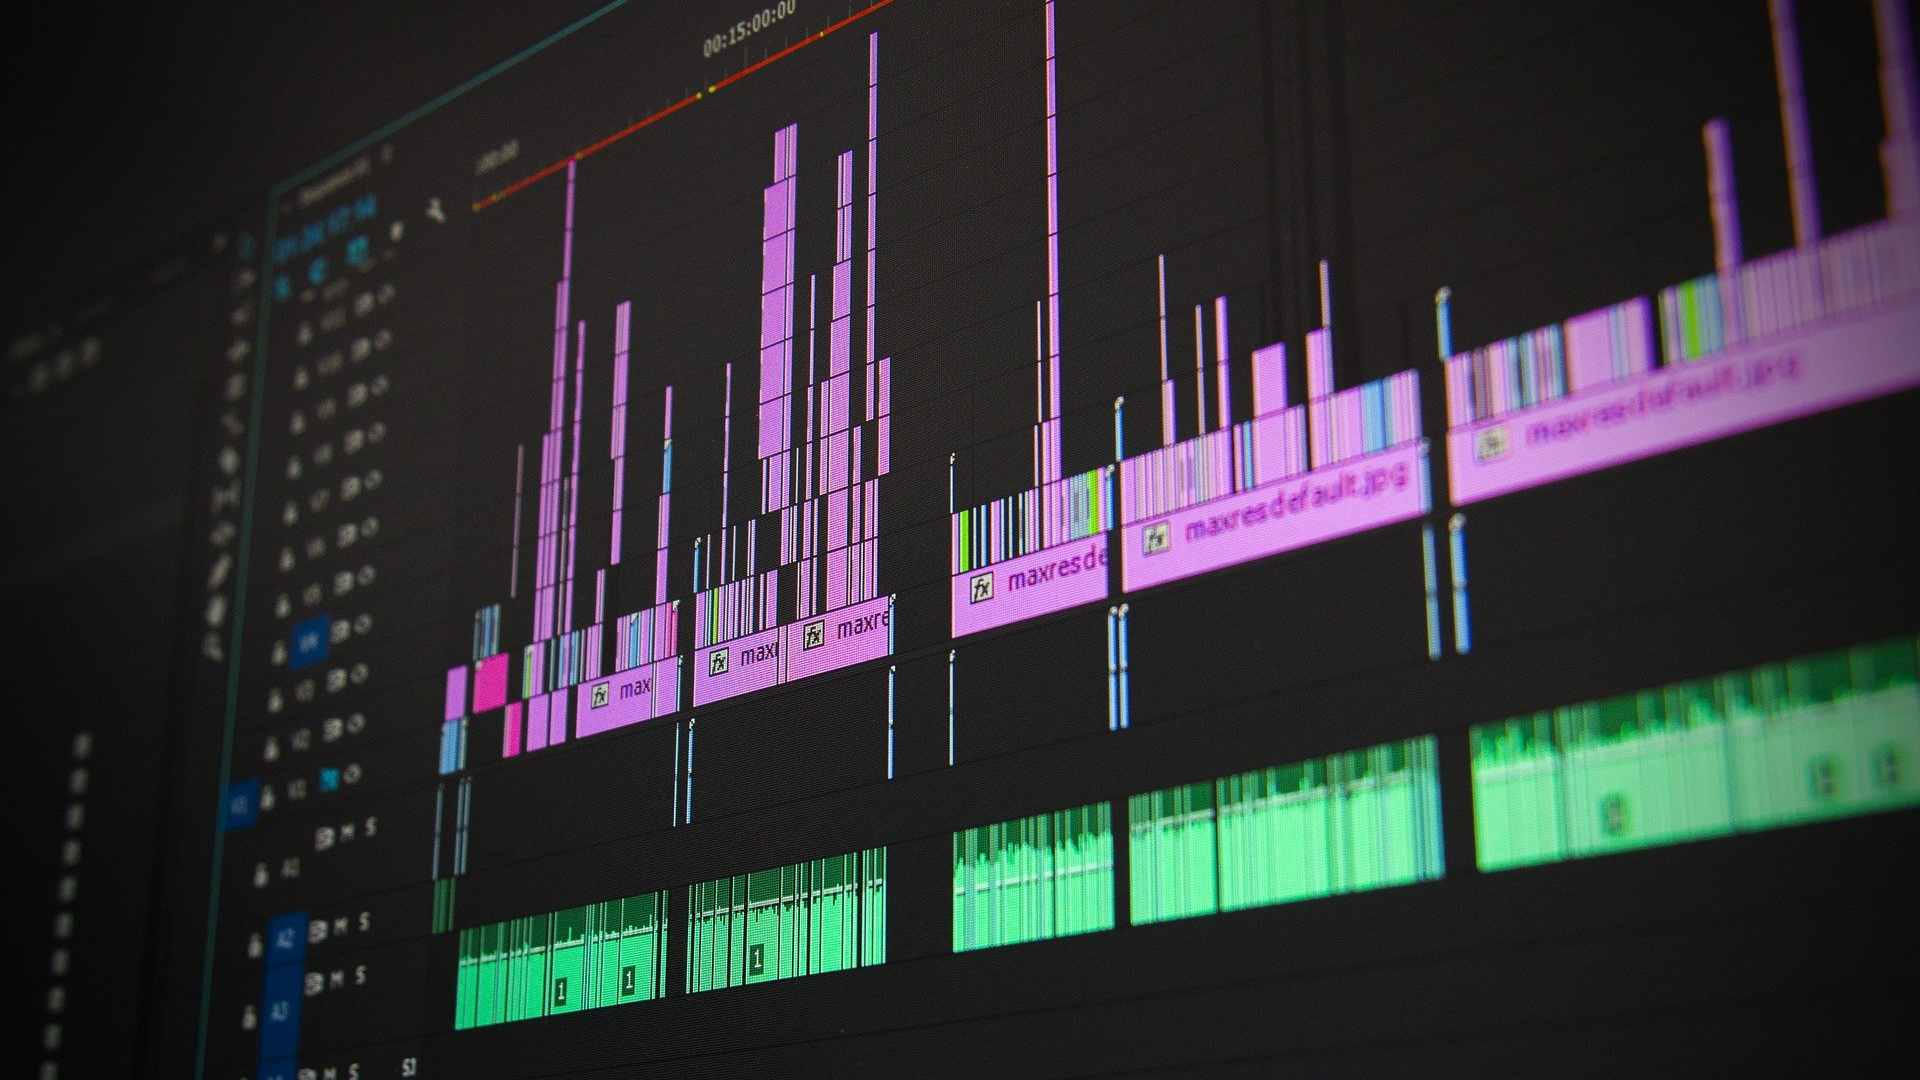 Both Audition and Adobe Premiere Pro now get the Loudness Meter feature. Image: Recklessstudios from Pixabay